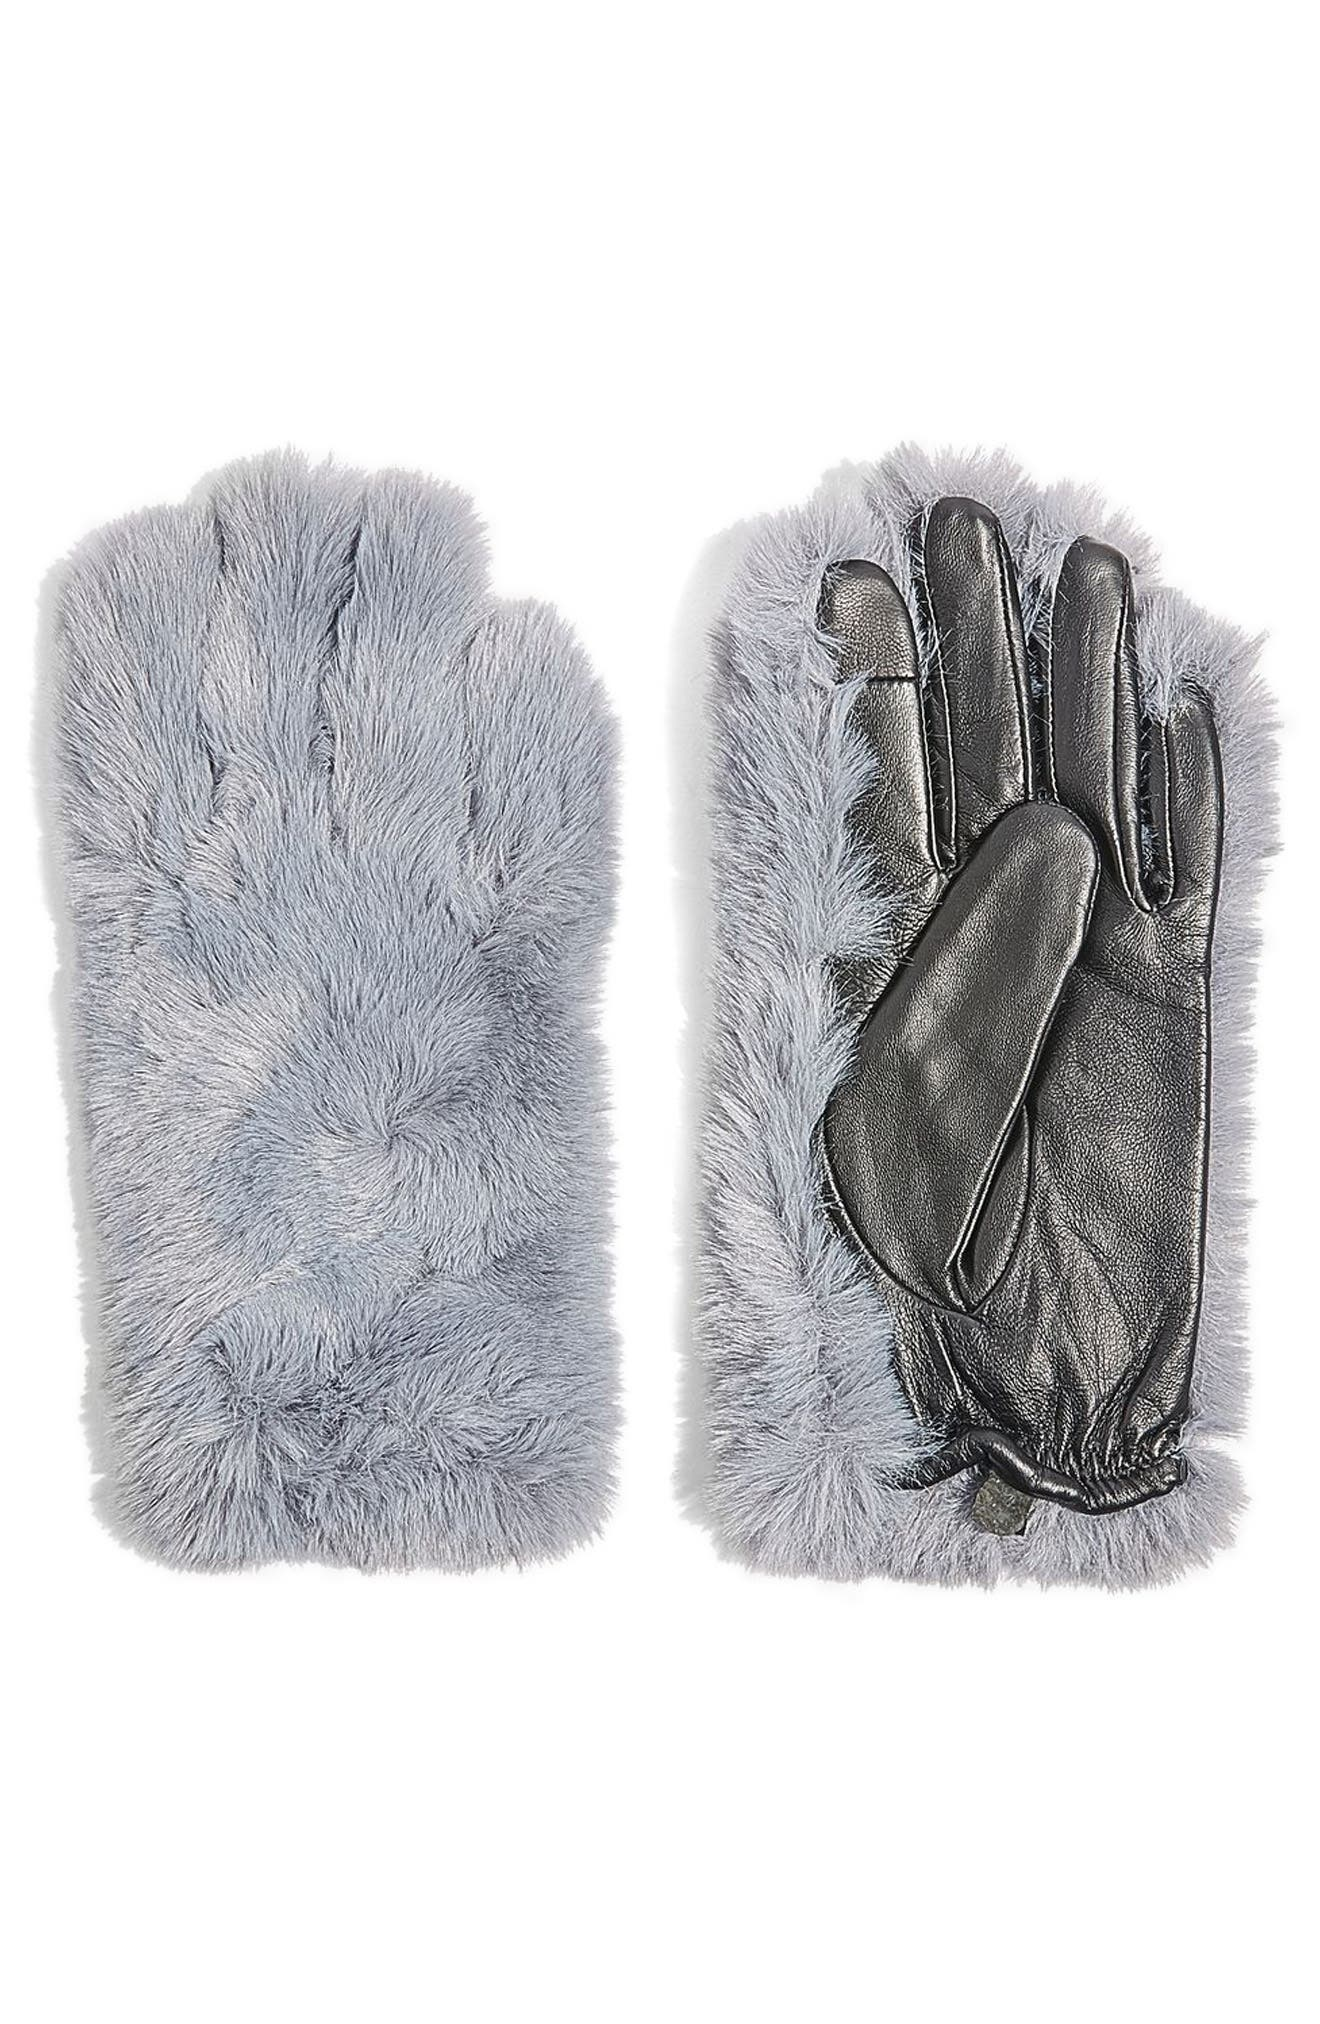 Alternate Image 1 Selected - Topshop Faux Fur & Leather Gloves